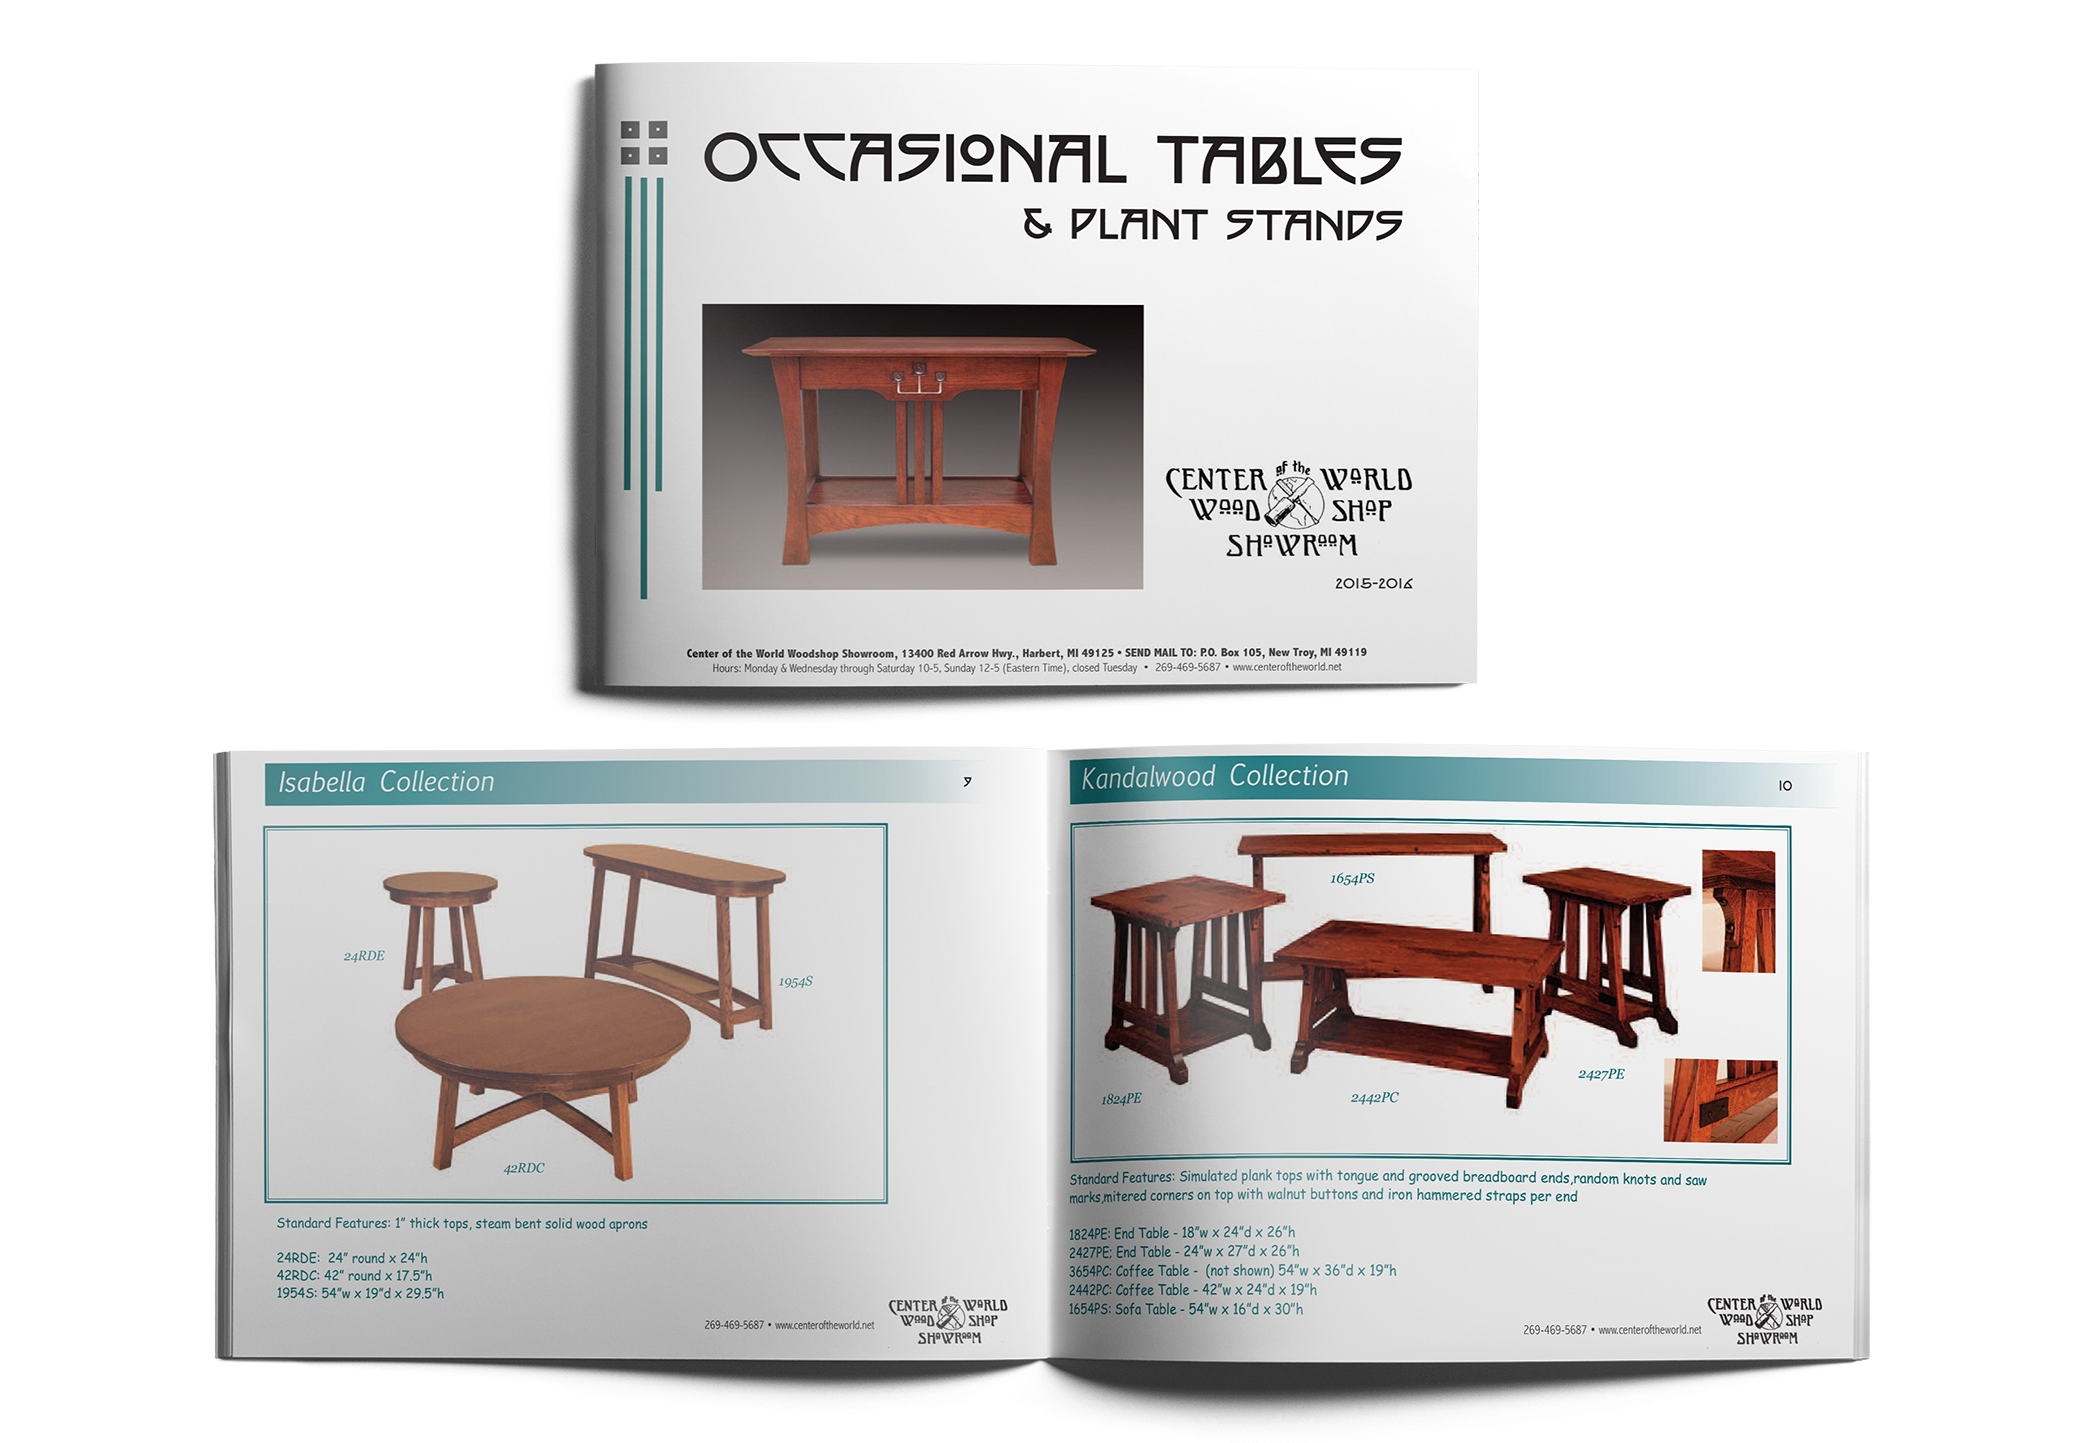 Occassional Tables Catalog